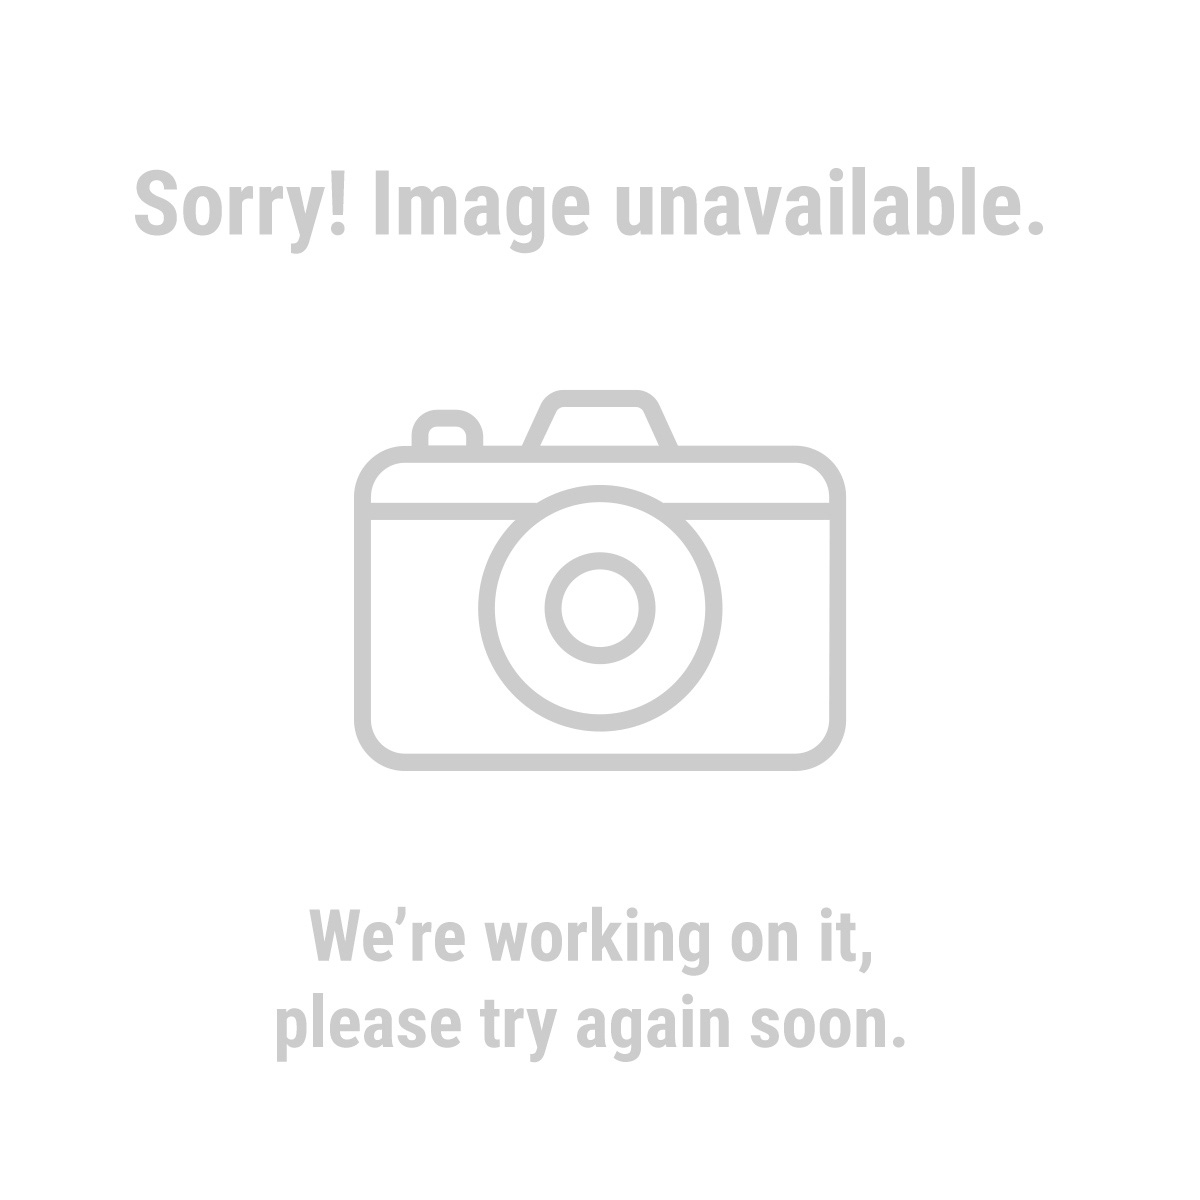 Finch & McClay 68979 3-In-1 Heavy Duty Tile Cutter